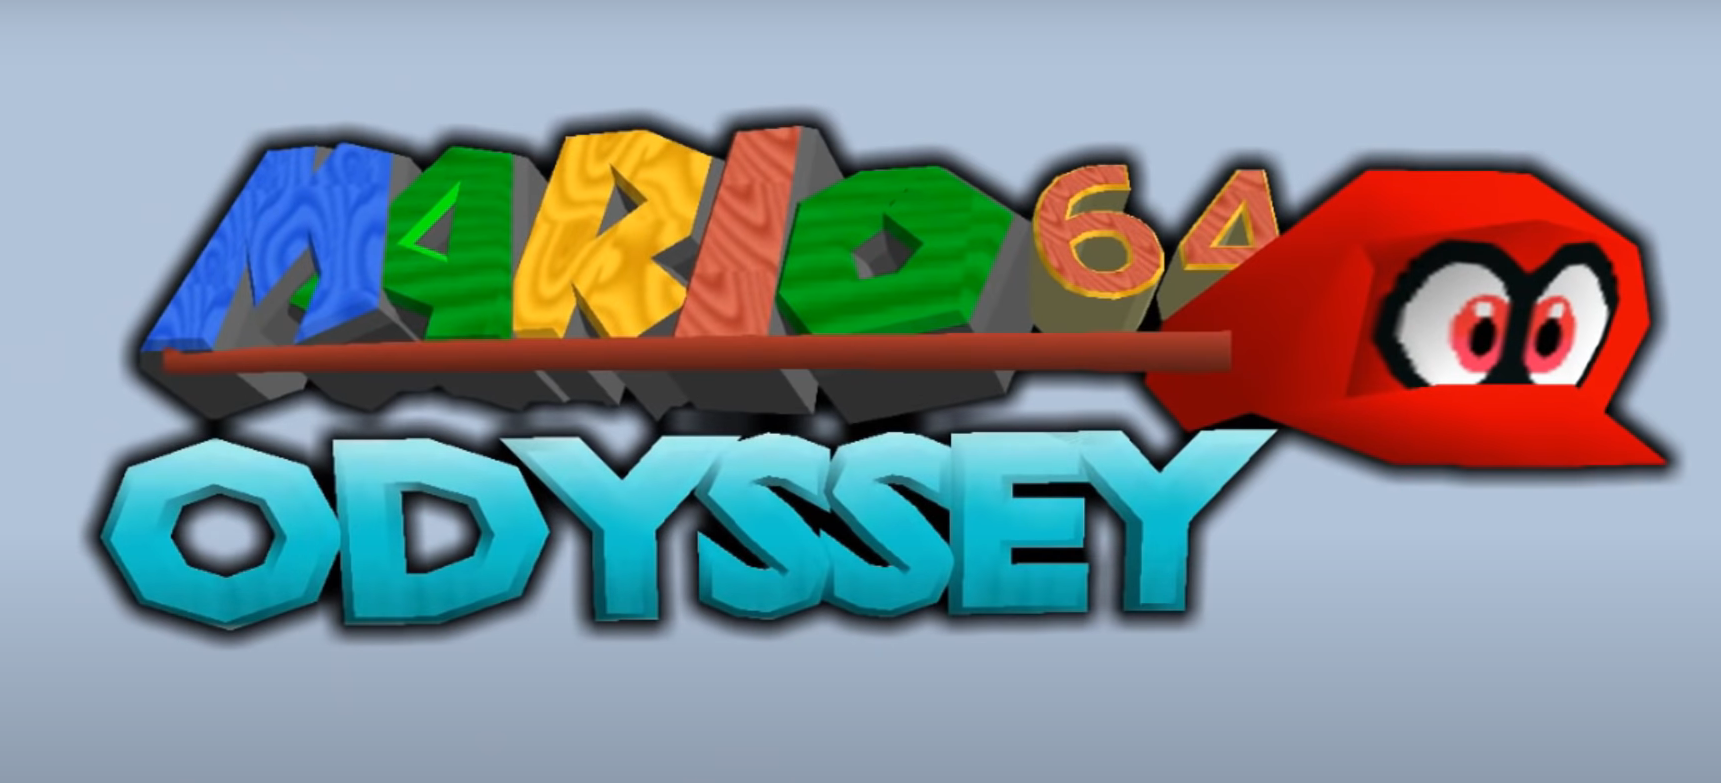 Super Mario Odyssey 64 Mod Brings Odyssey S Levels And Mechanics